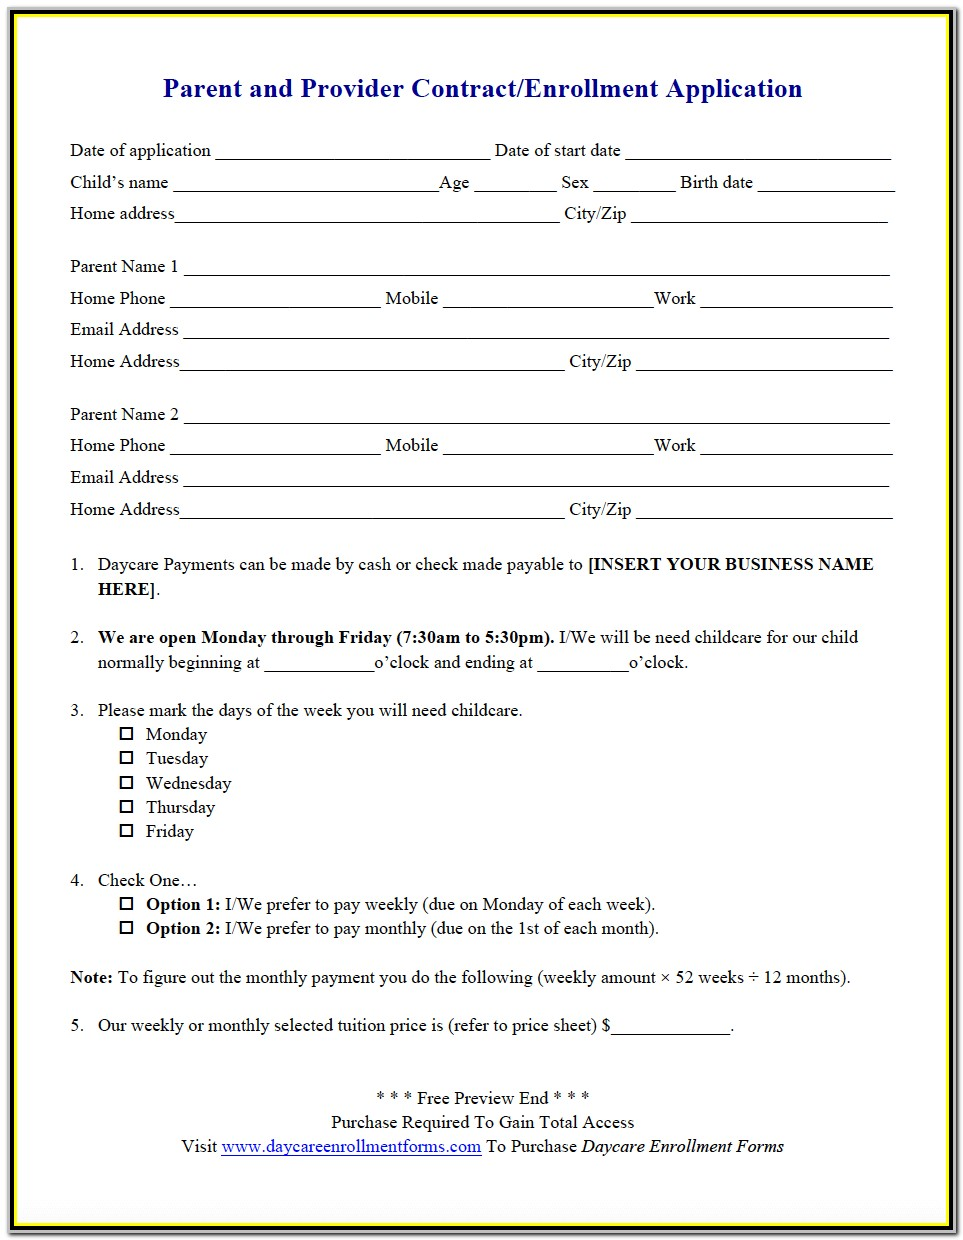 Daycare Application Form For Parents Pdf